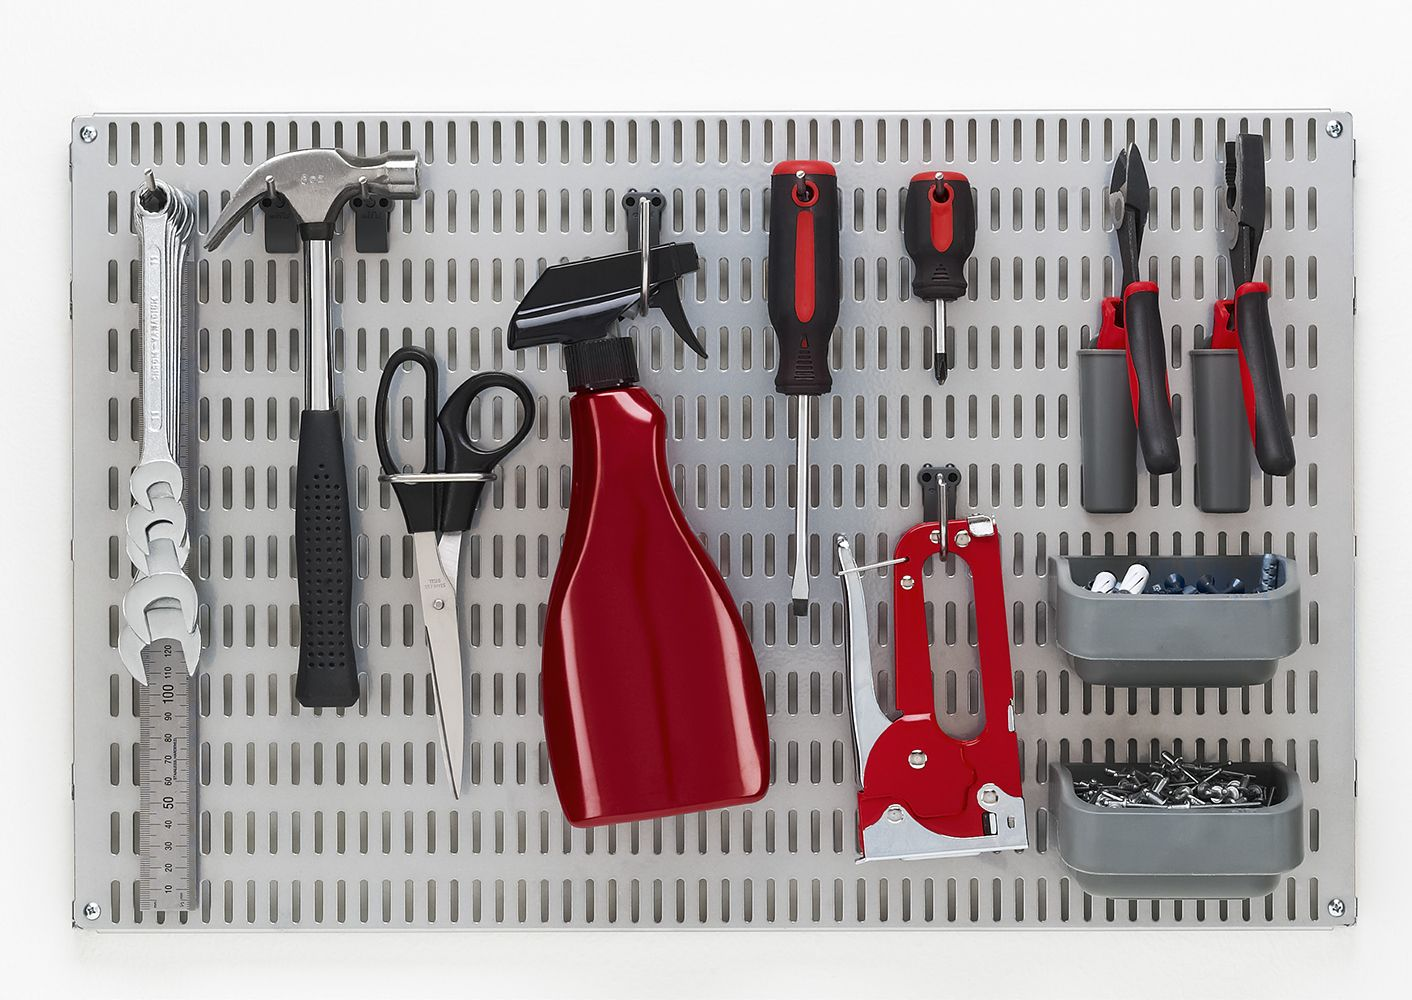 Elfa Pegboard for Tools